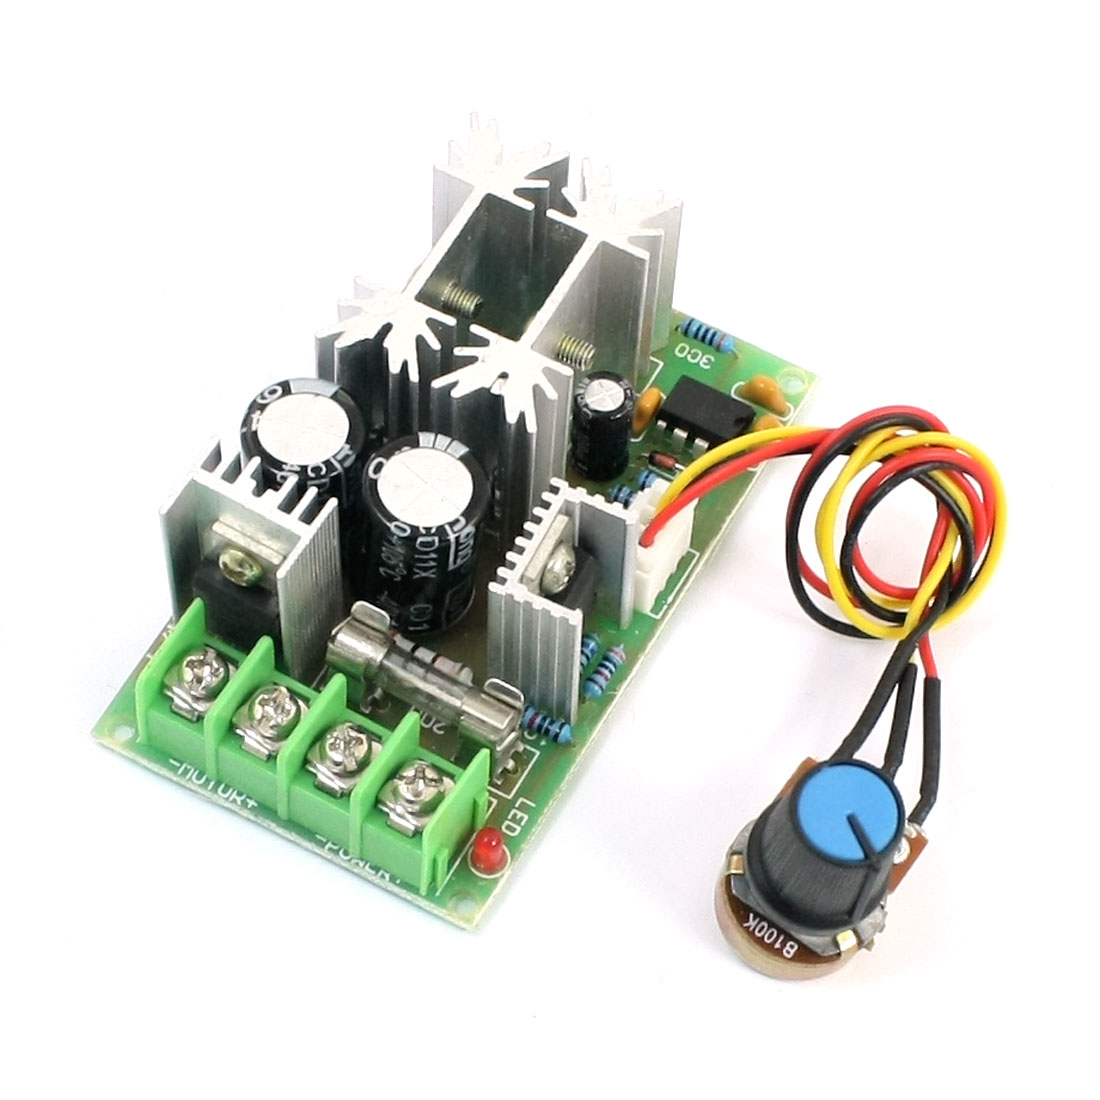 DC10-60V 20A Rotary Potentiometer Adjustable Pulse Width Modulation PWM Motor Speed Controller Switch Module 8.3""